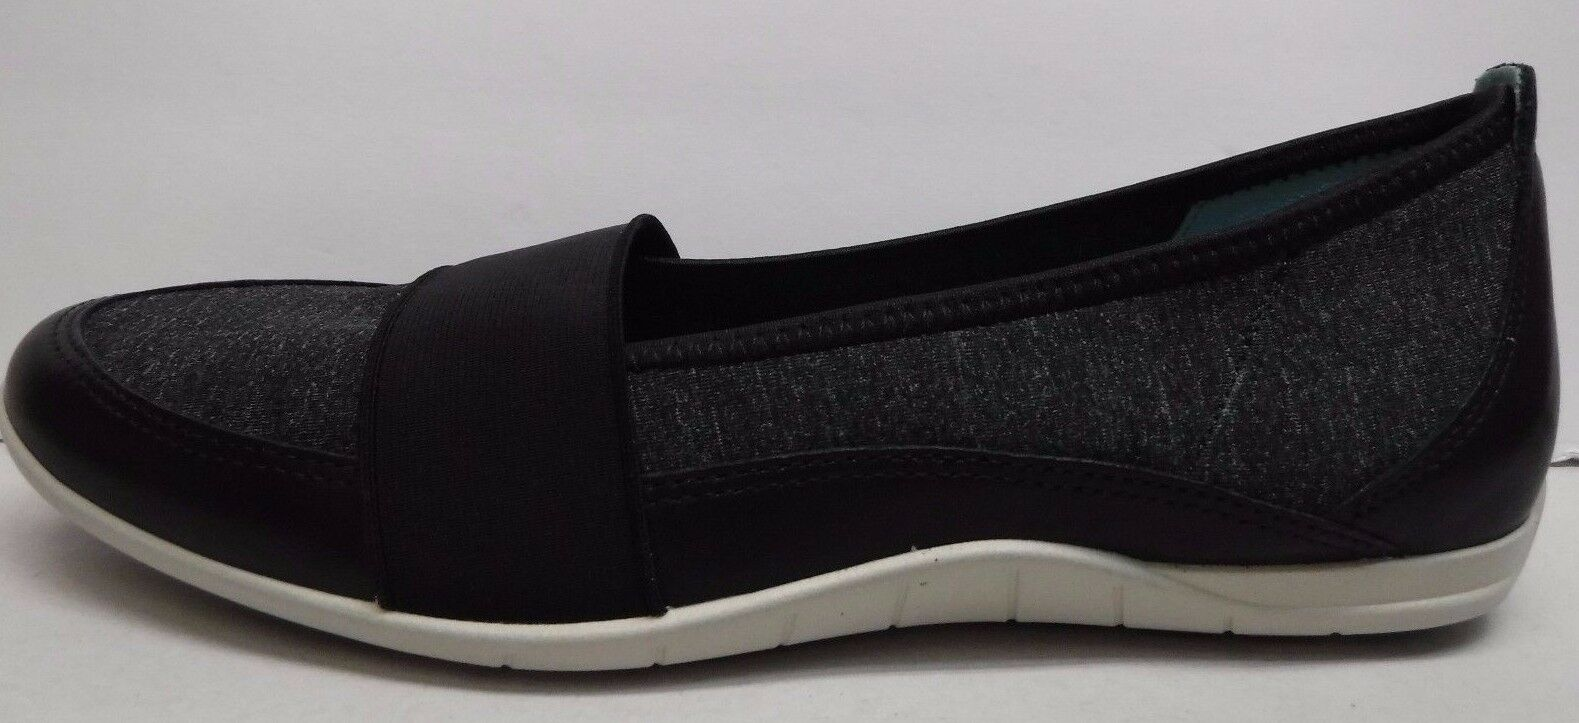 Ecco Size EUR 41 US 10 10.5 Black Slip On Loafer New Womens shoes